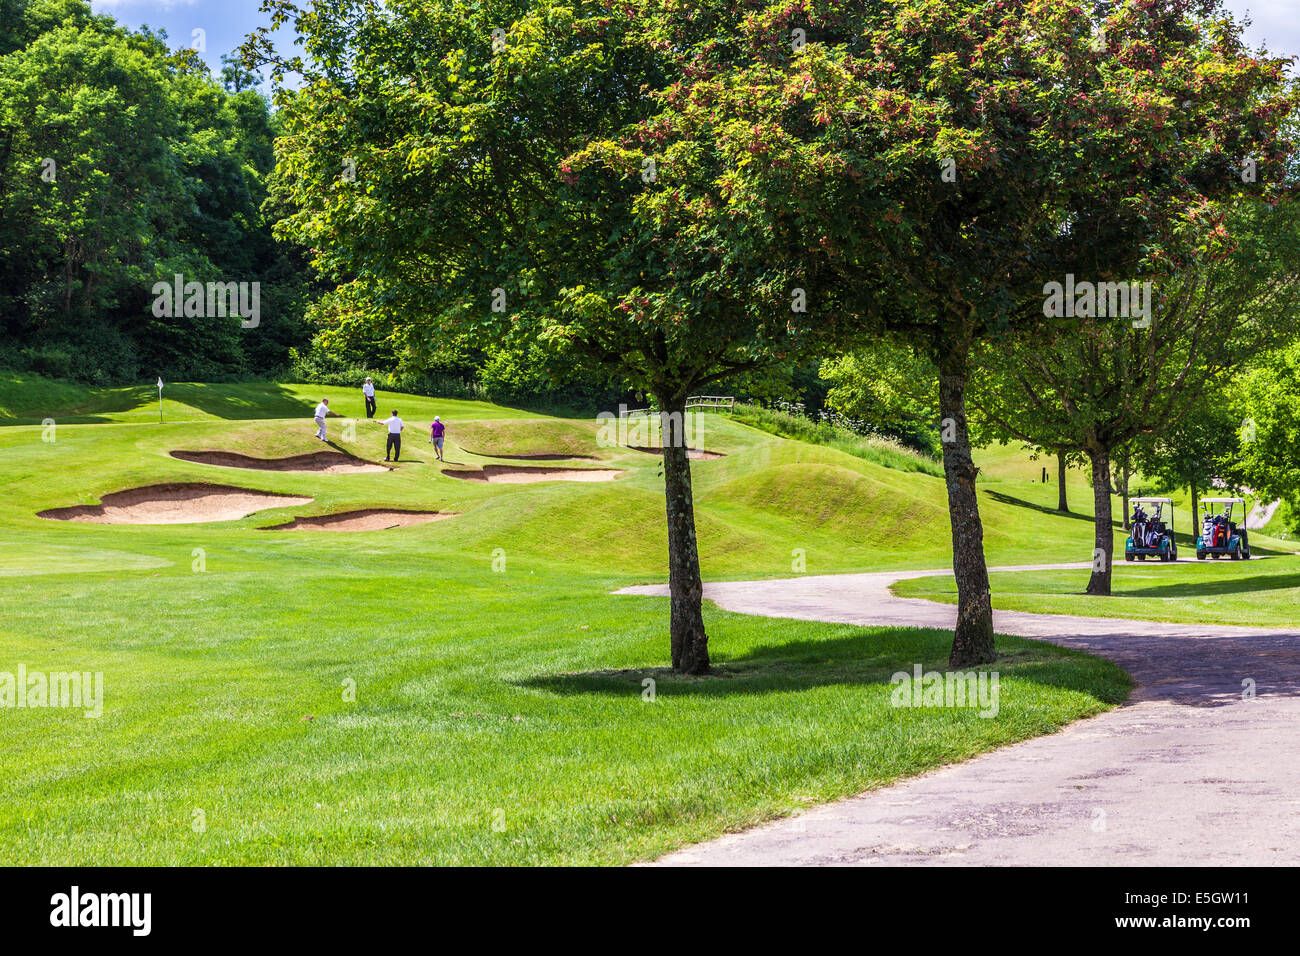 Four male golfers playing near bunkers on a golf course. - Stock Image